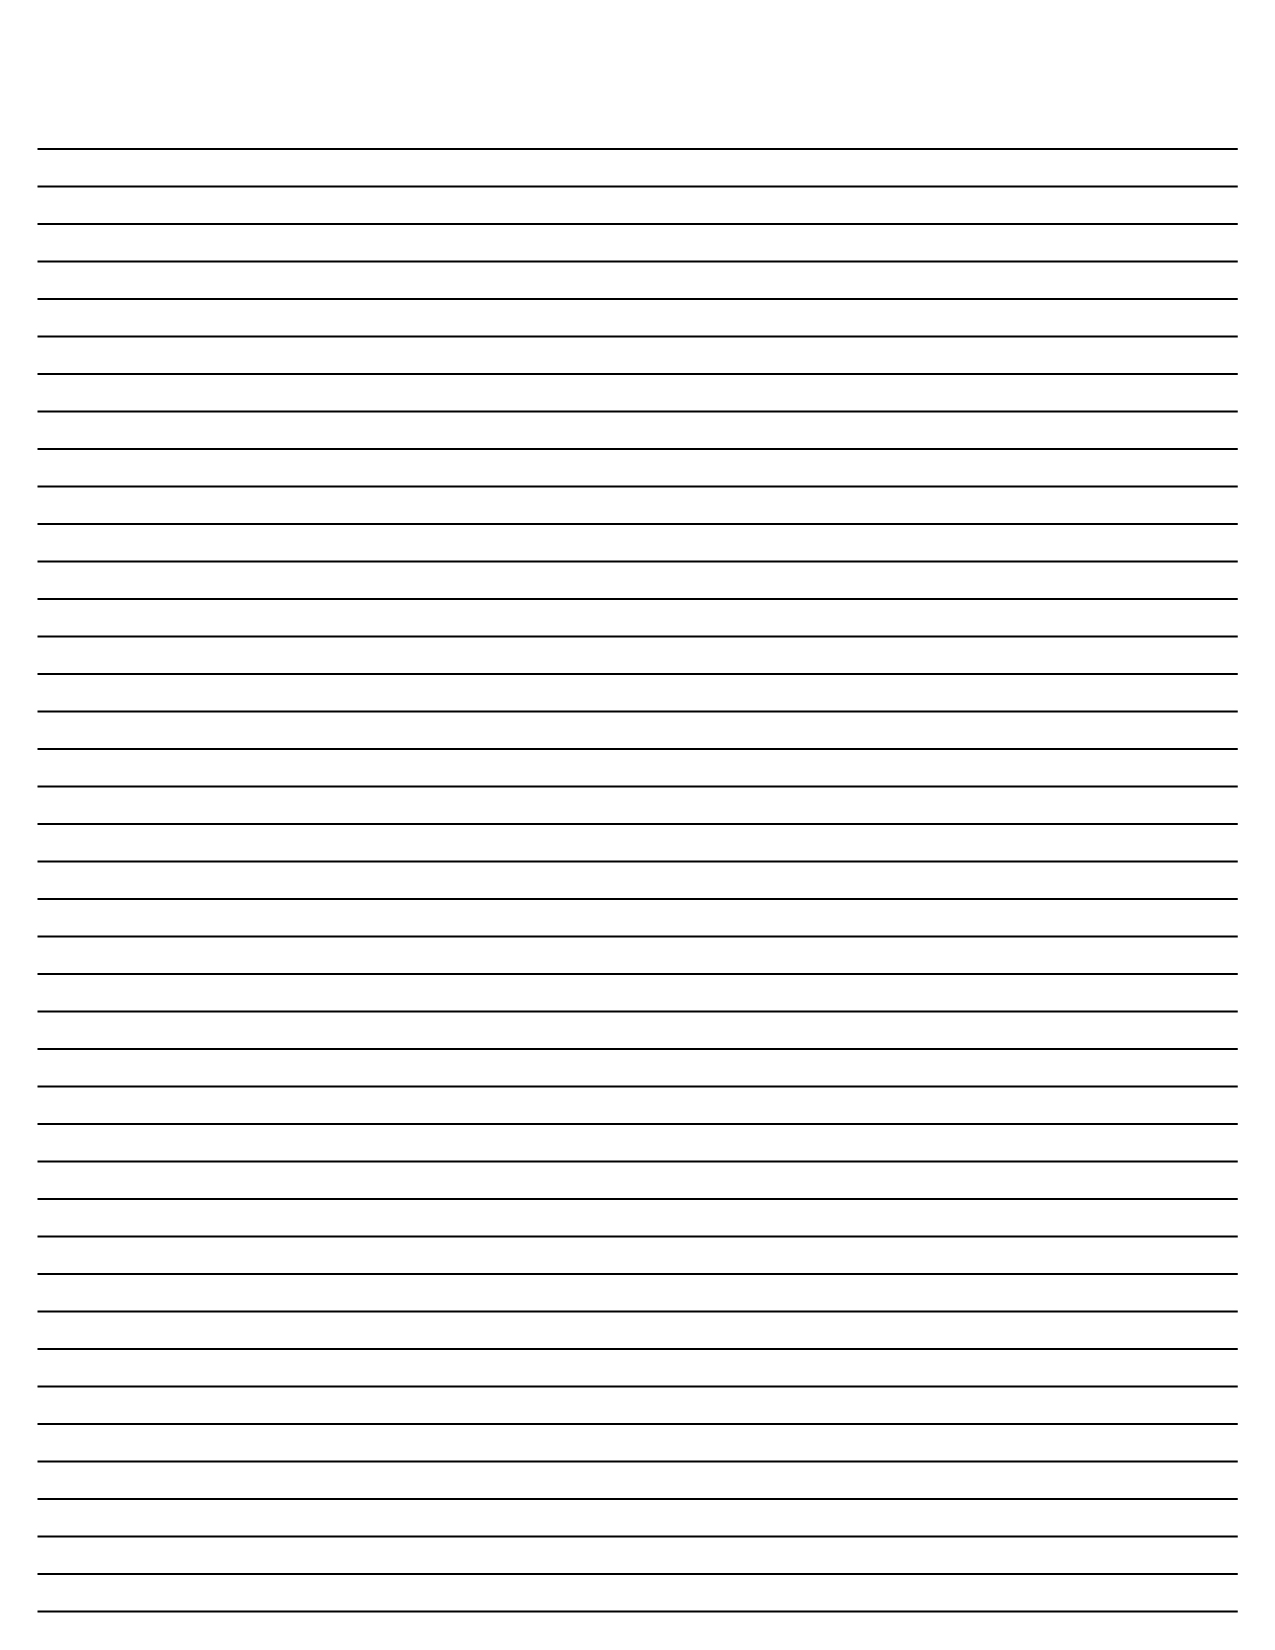 Blank lined paper template white gold for Free printable lined paper template for kids